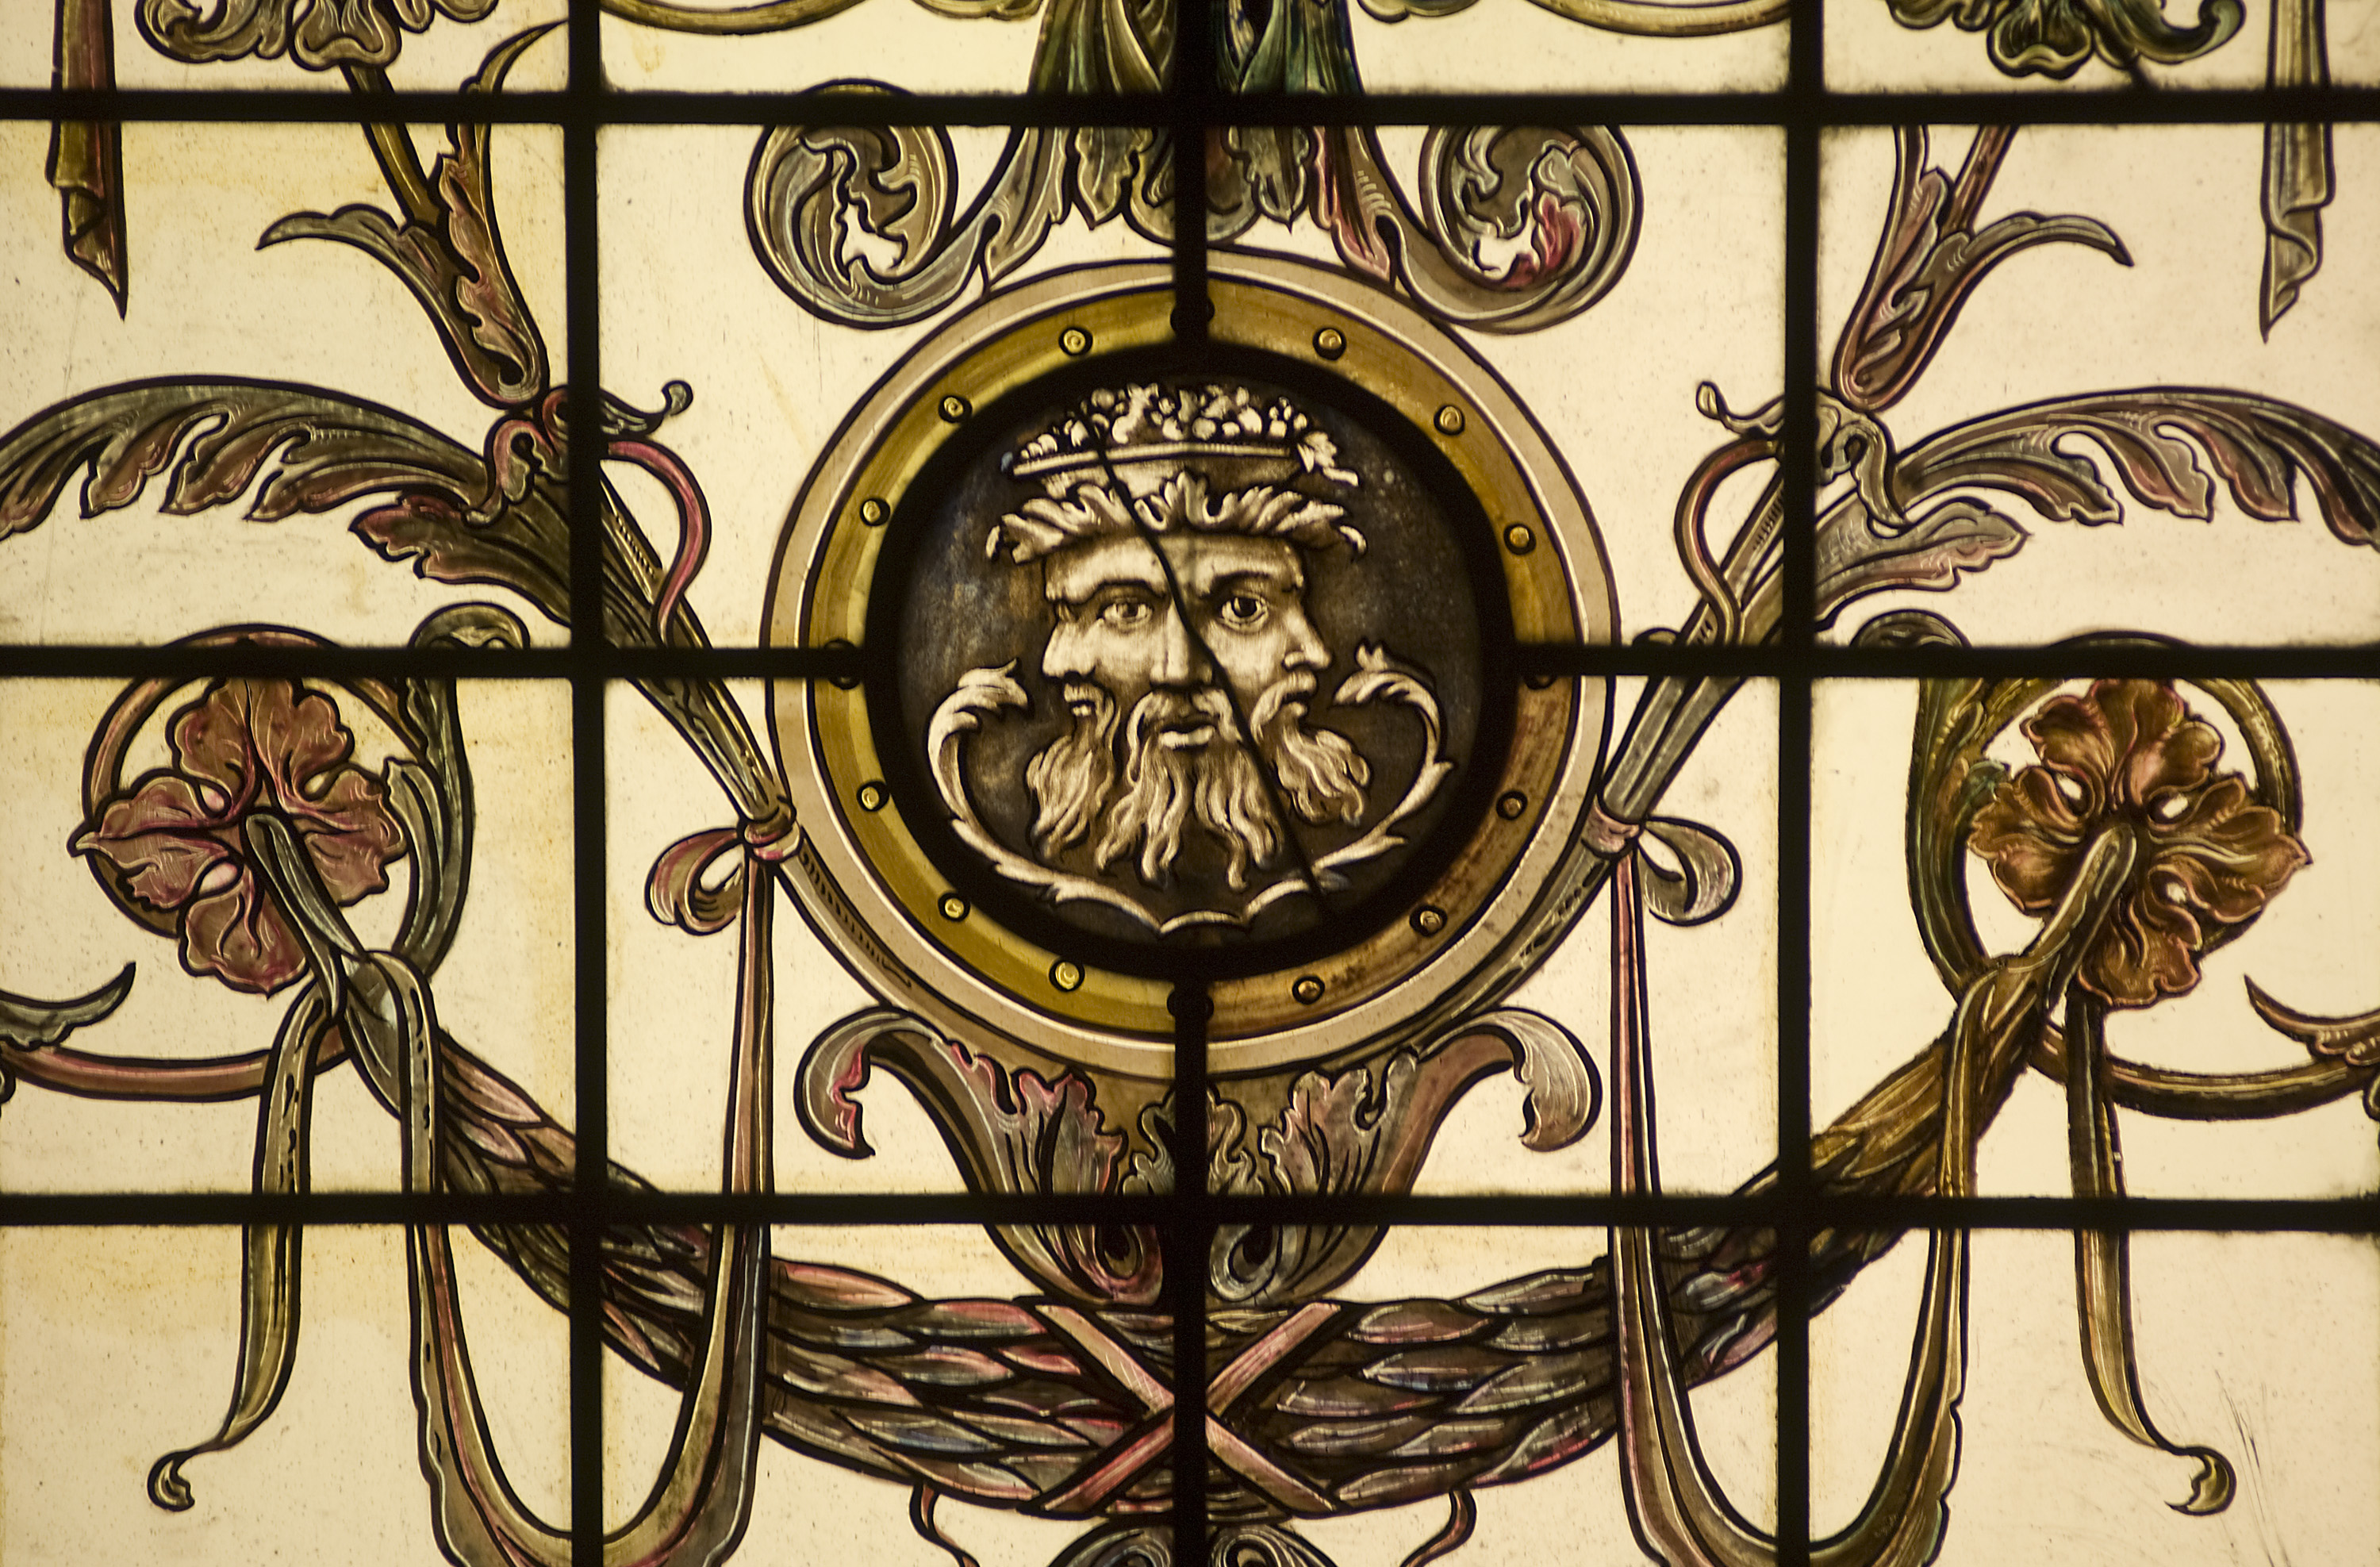 Image_of_Glass_Panel_Depicting_the_Roman_God_Janus_The_Hermitage_Hotel_1908_Historic_Hotels_of_America_in_Nashville_Tennessee.jpg